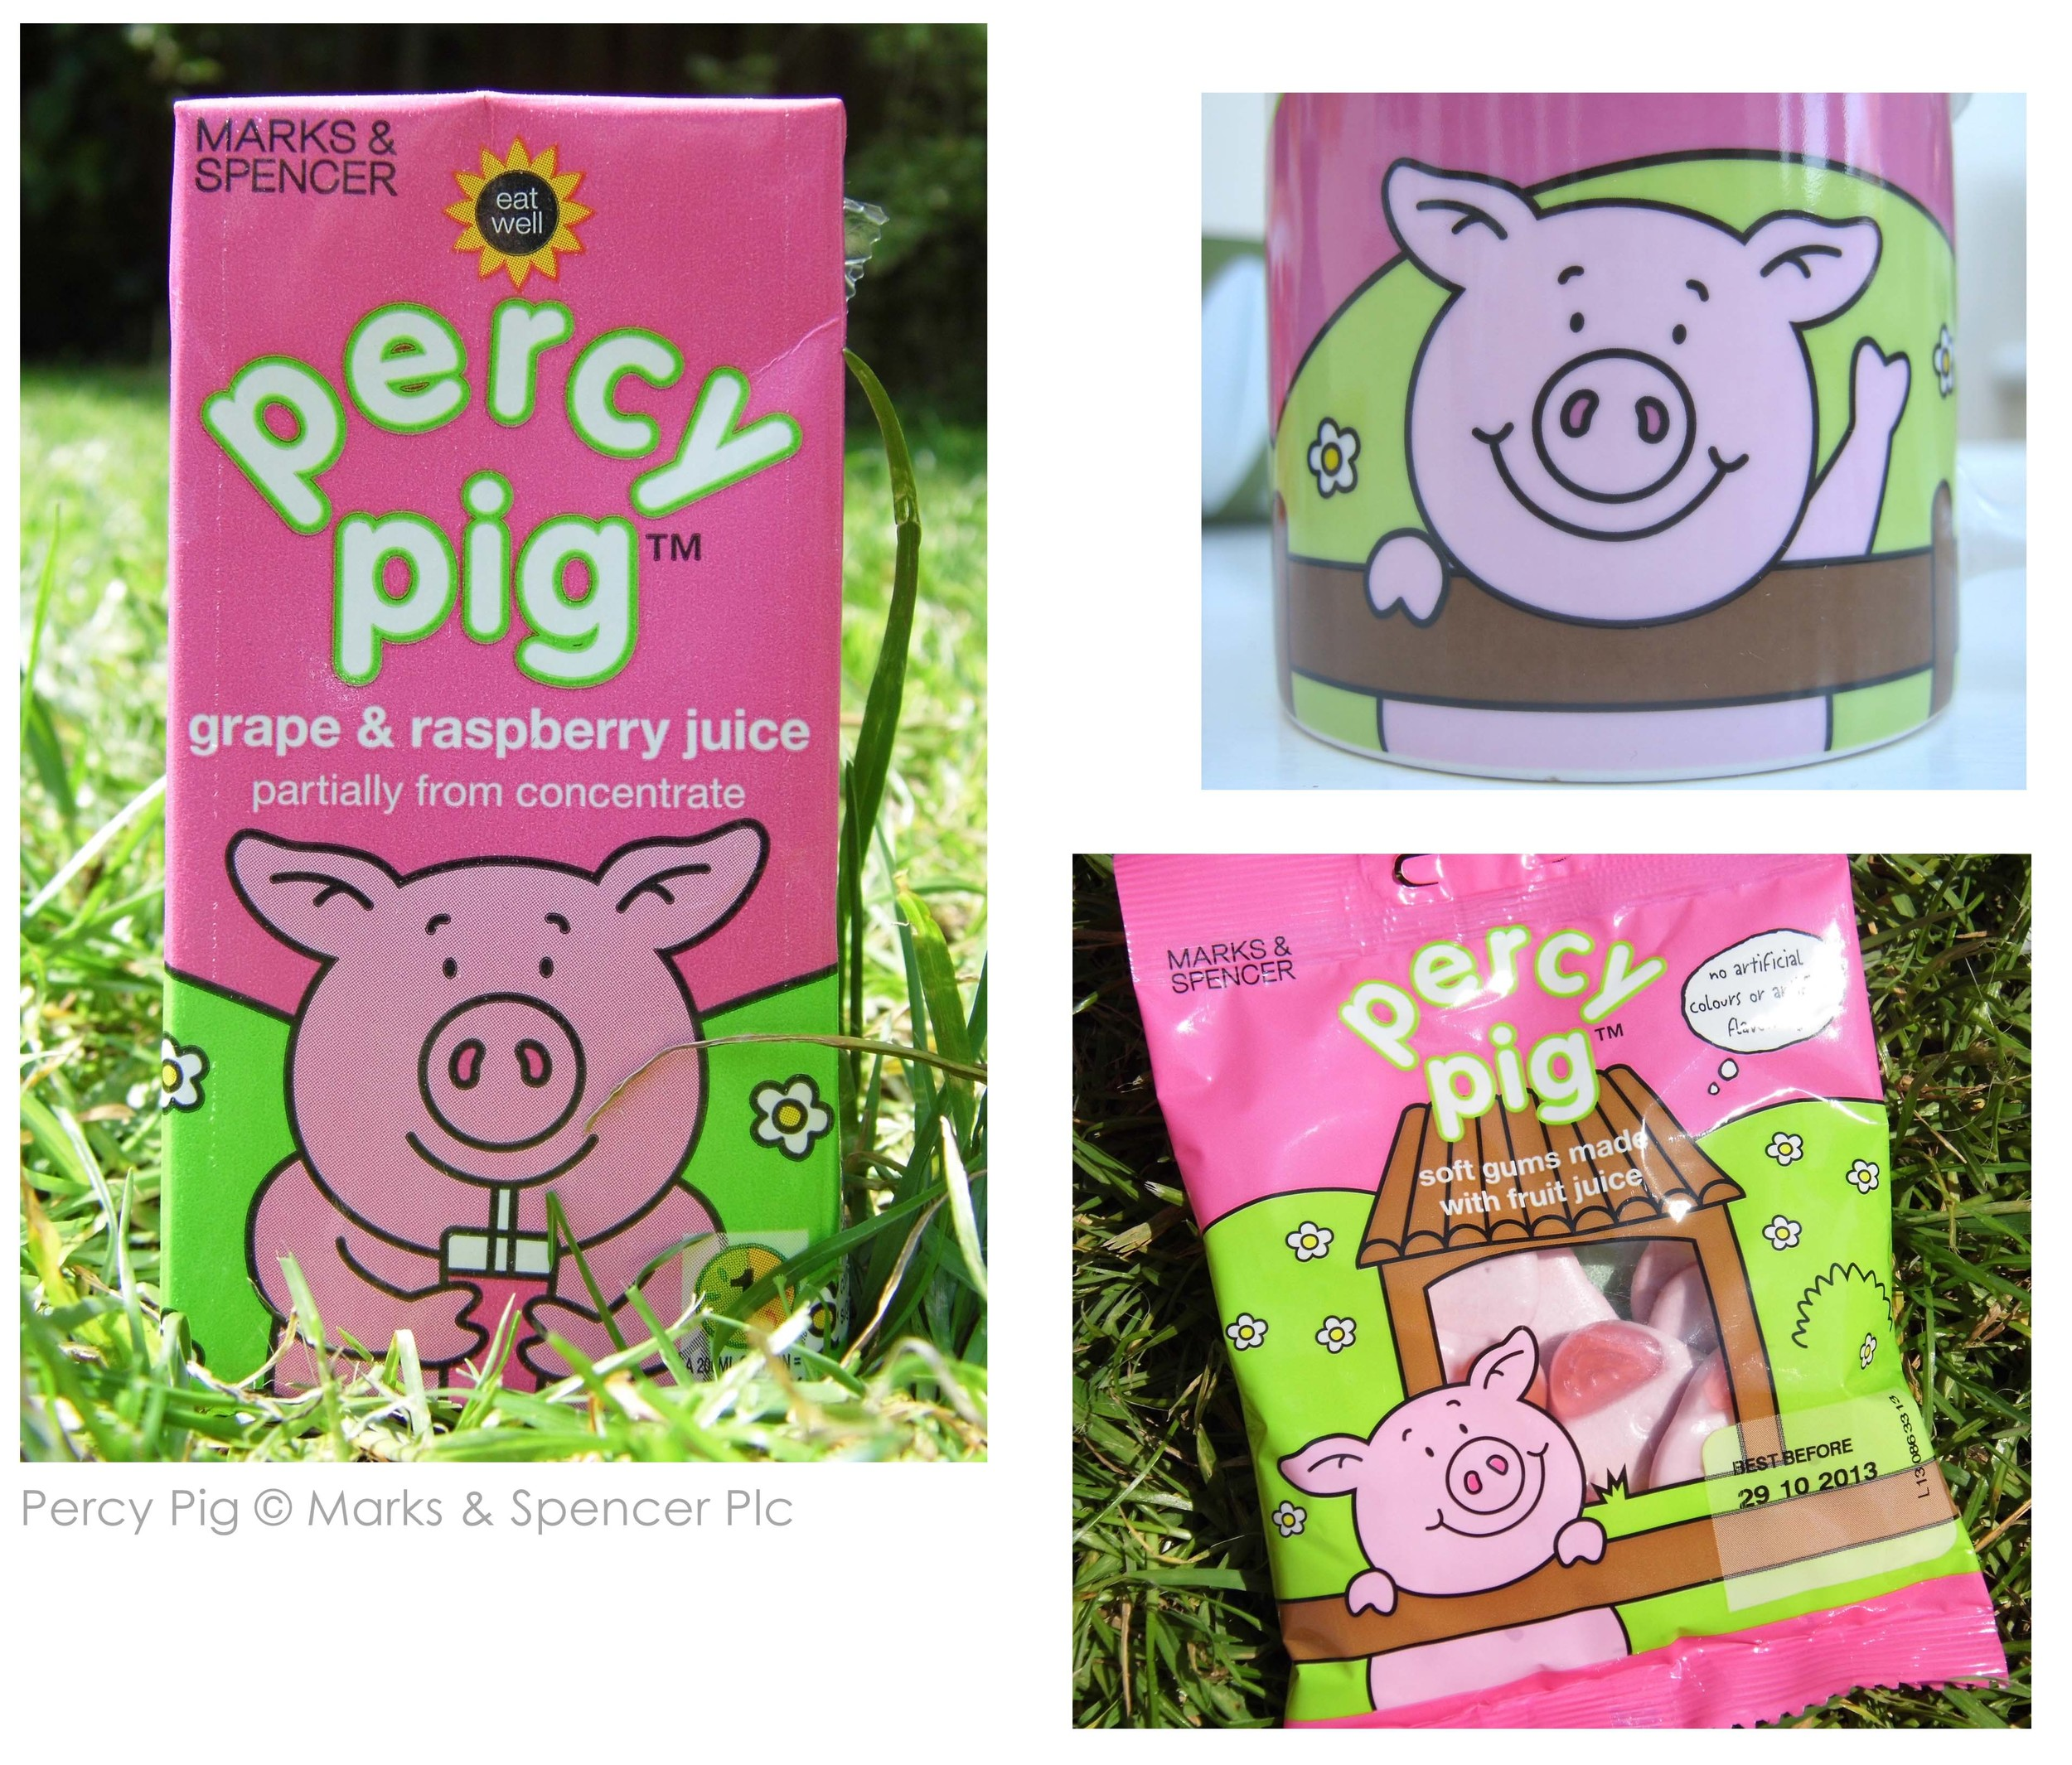 percy pig web copyright.jpg